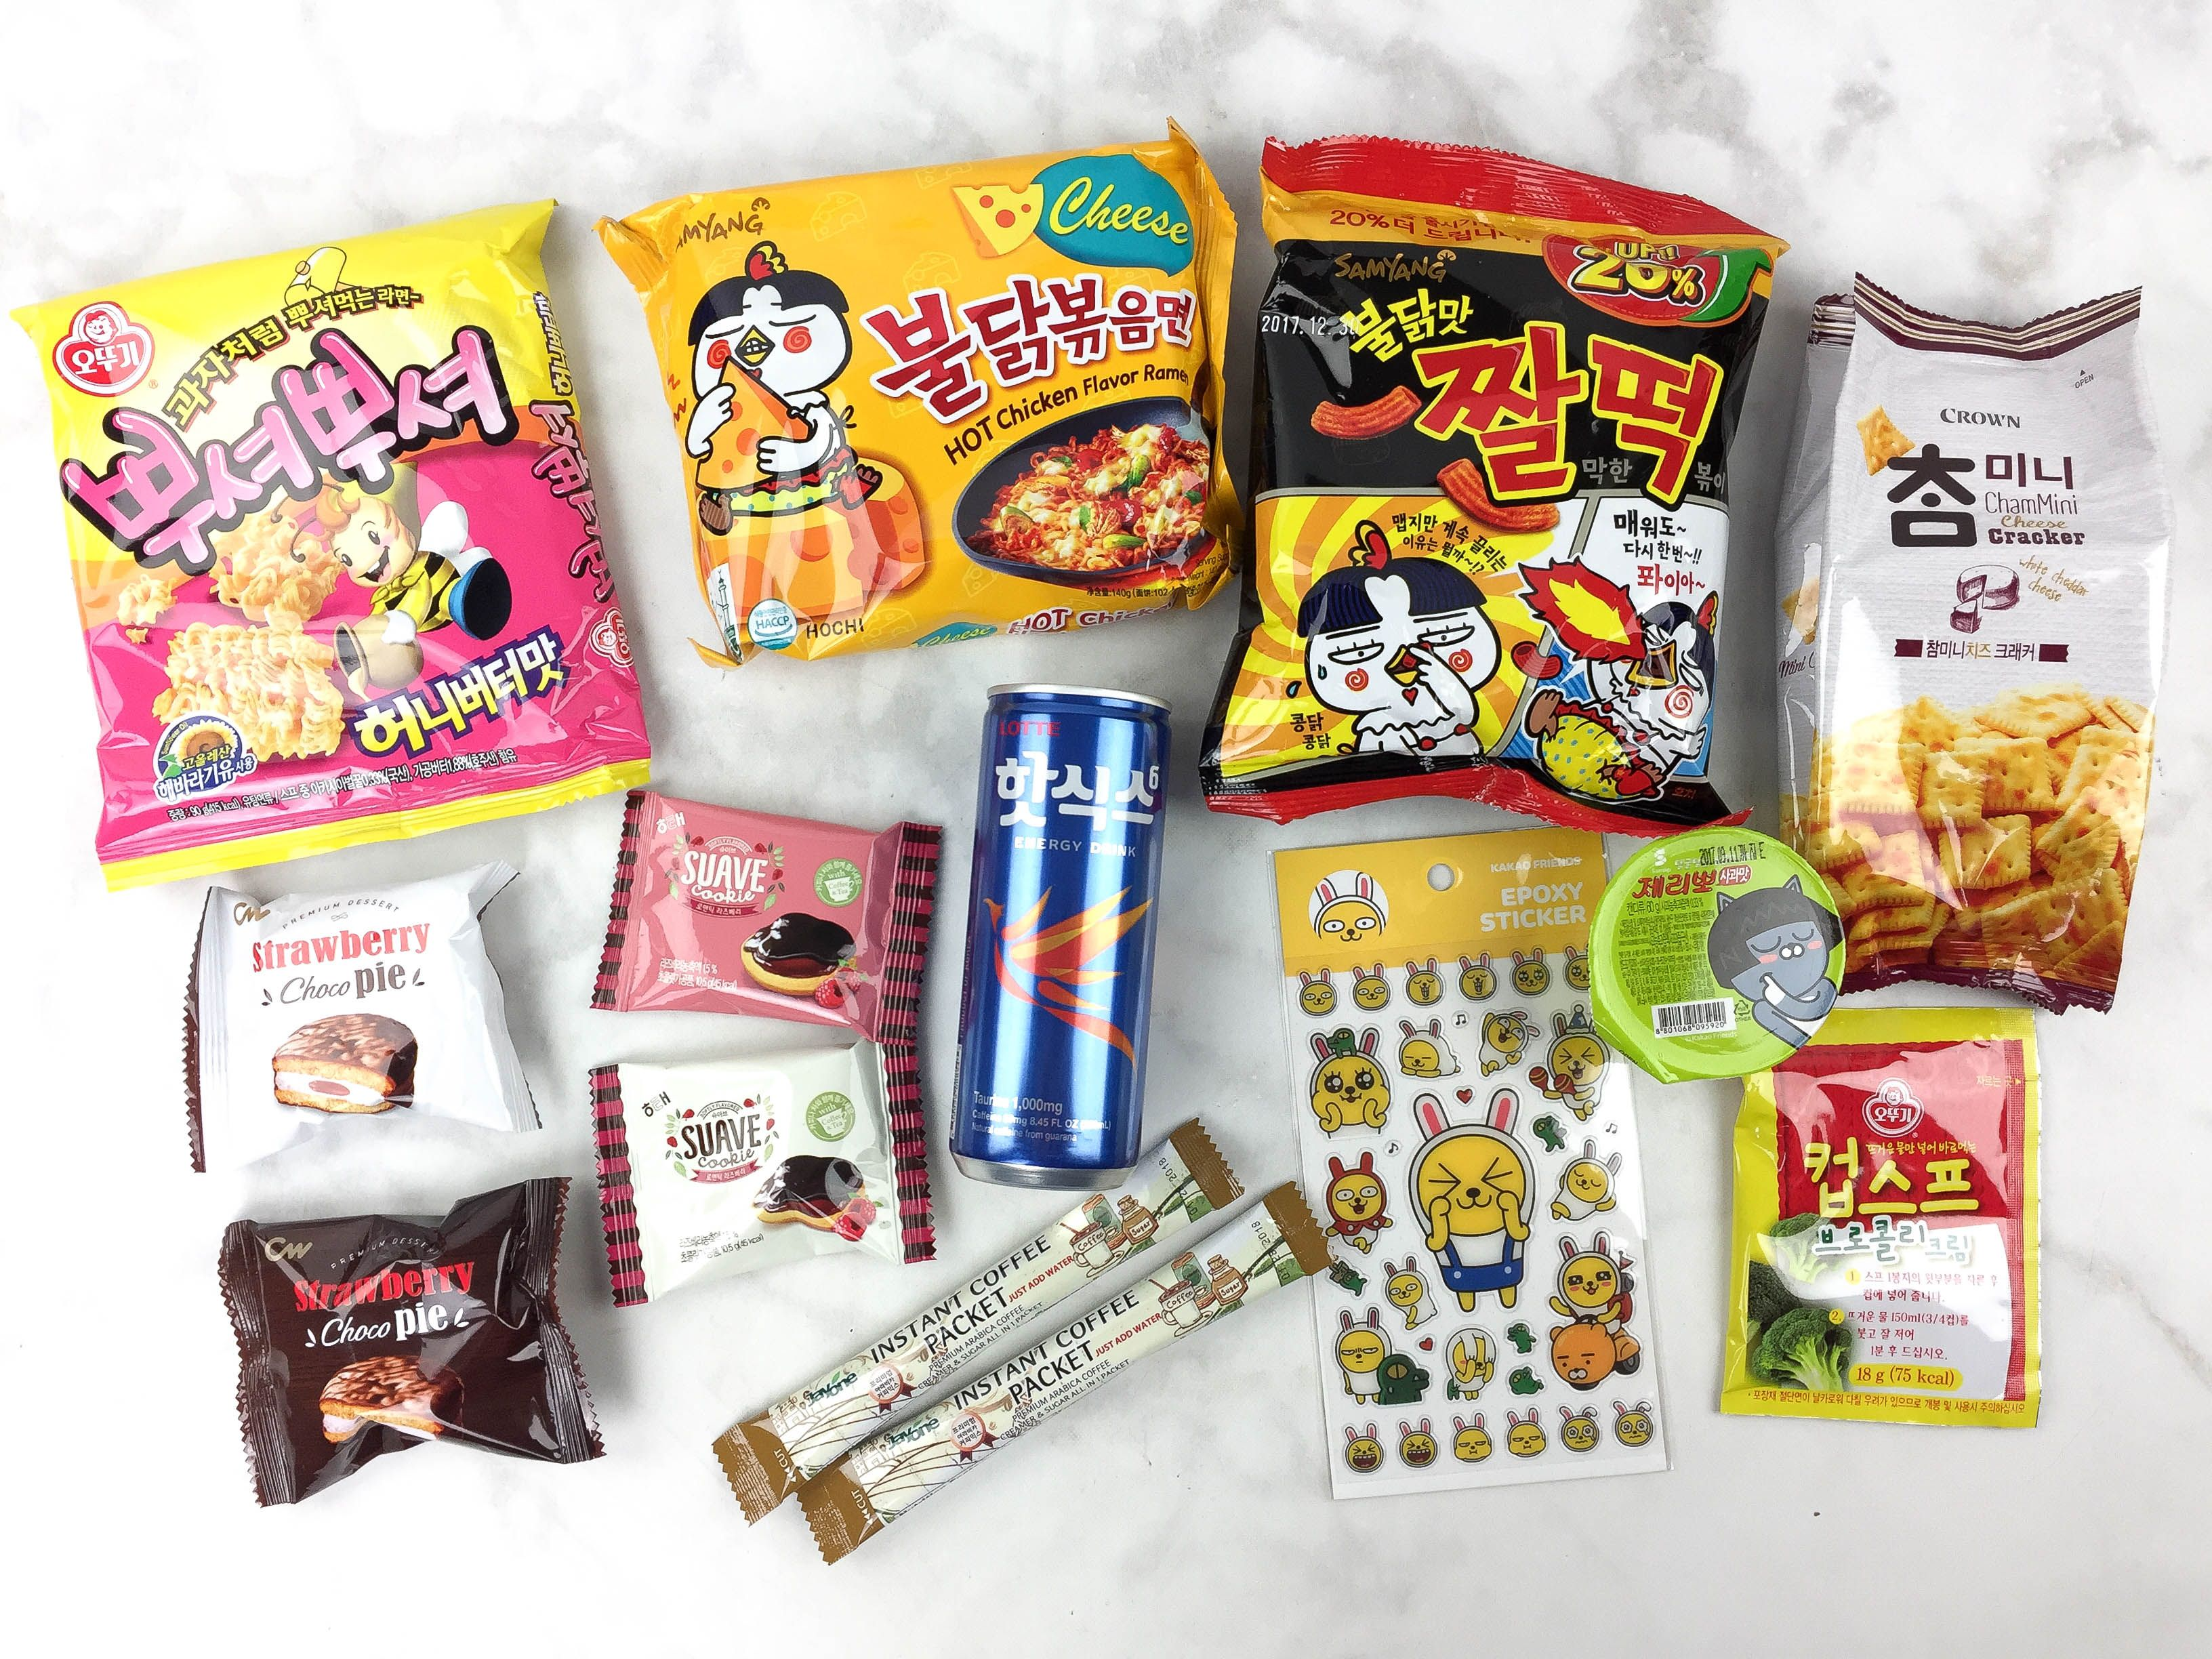 Snack Fever March 2017 theme was Cause There Ain't No Mountain High Enough! See all the items in our Korean snack subscription box in our review!   March 2017 Snack Fever Subscription Box Review + Coupon →  https://hellosubscription.com/2017/04/march-2017-snack-fever-subscription-box-review-coupon/ #SnackFever  #subscriptionbox